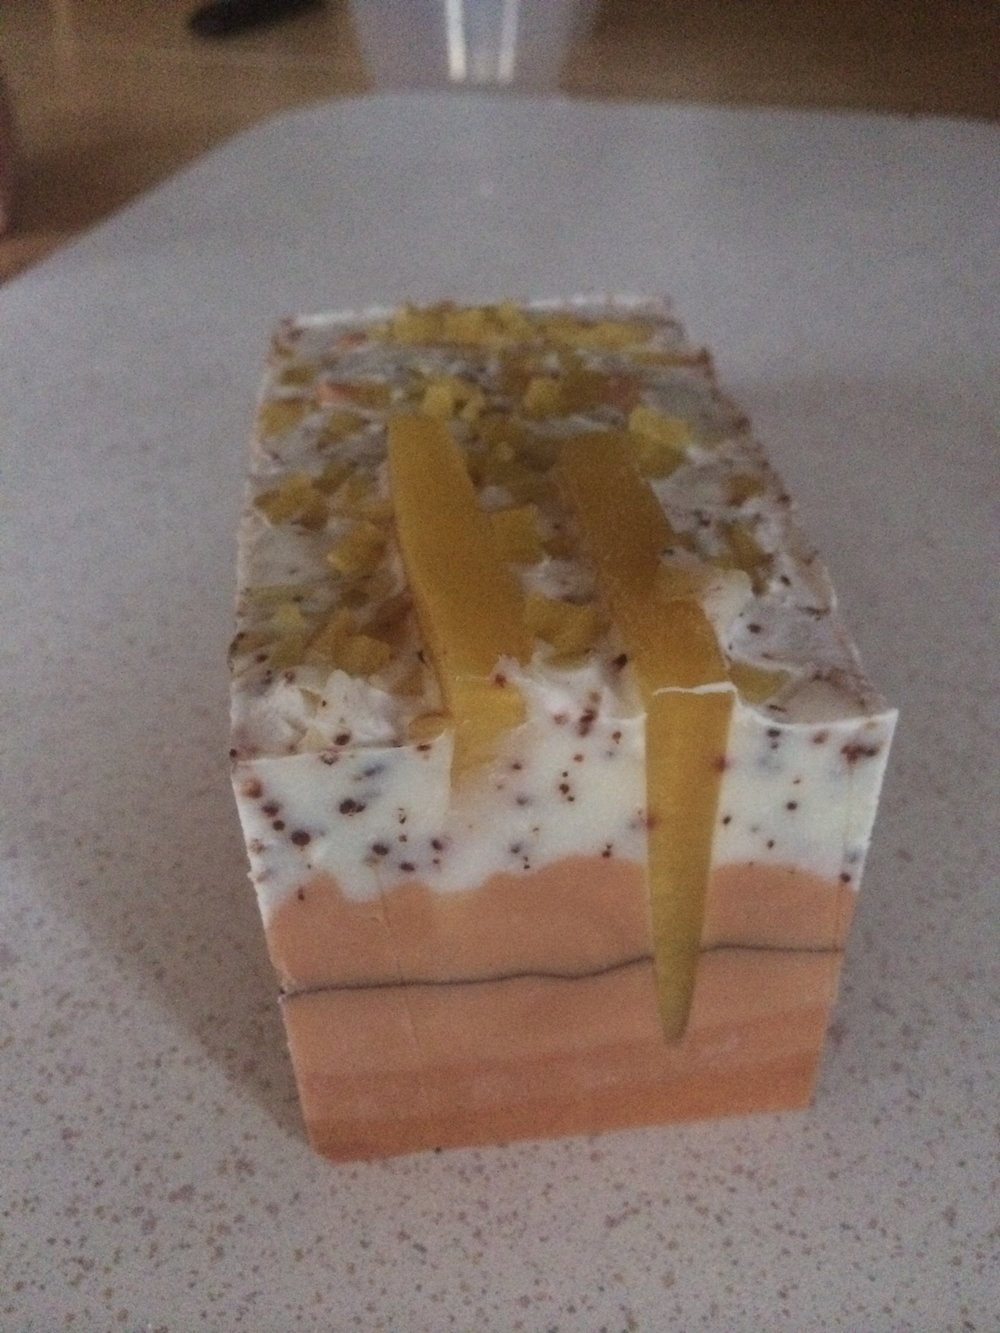 Orange and rose hip hybrid soap from Soap School